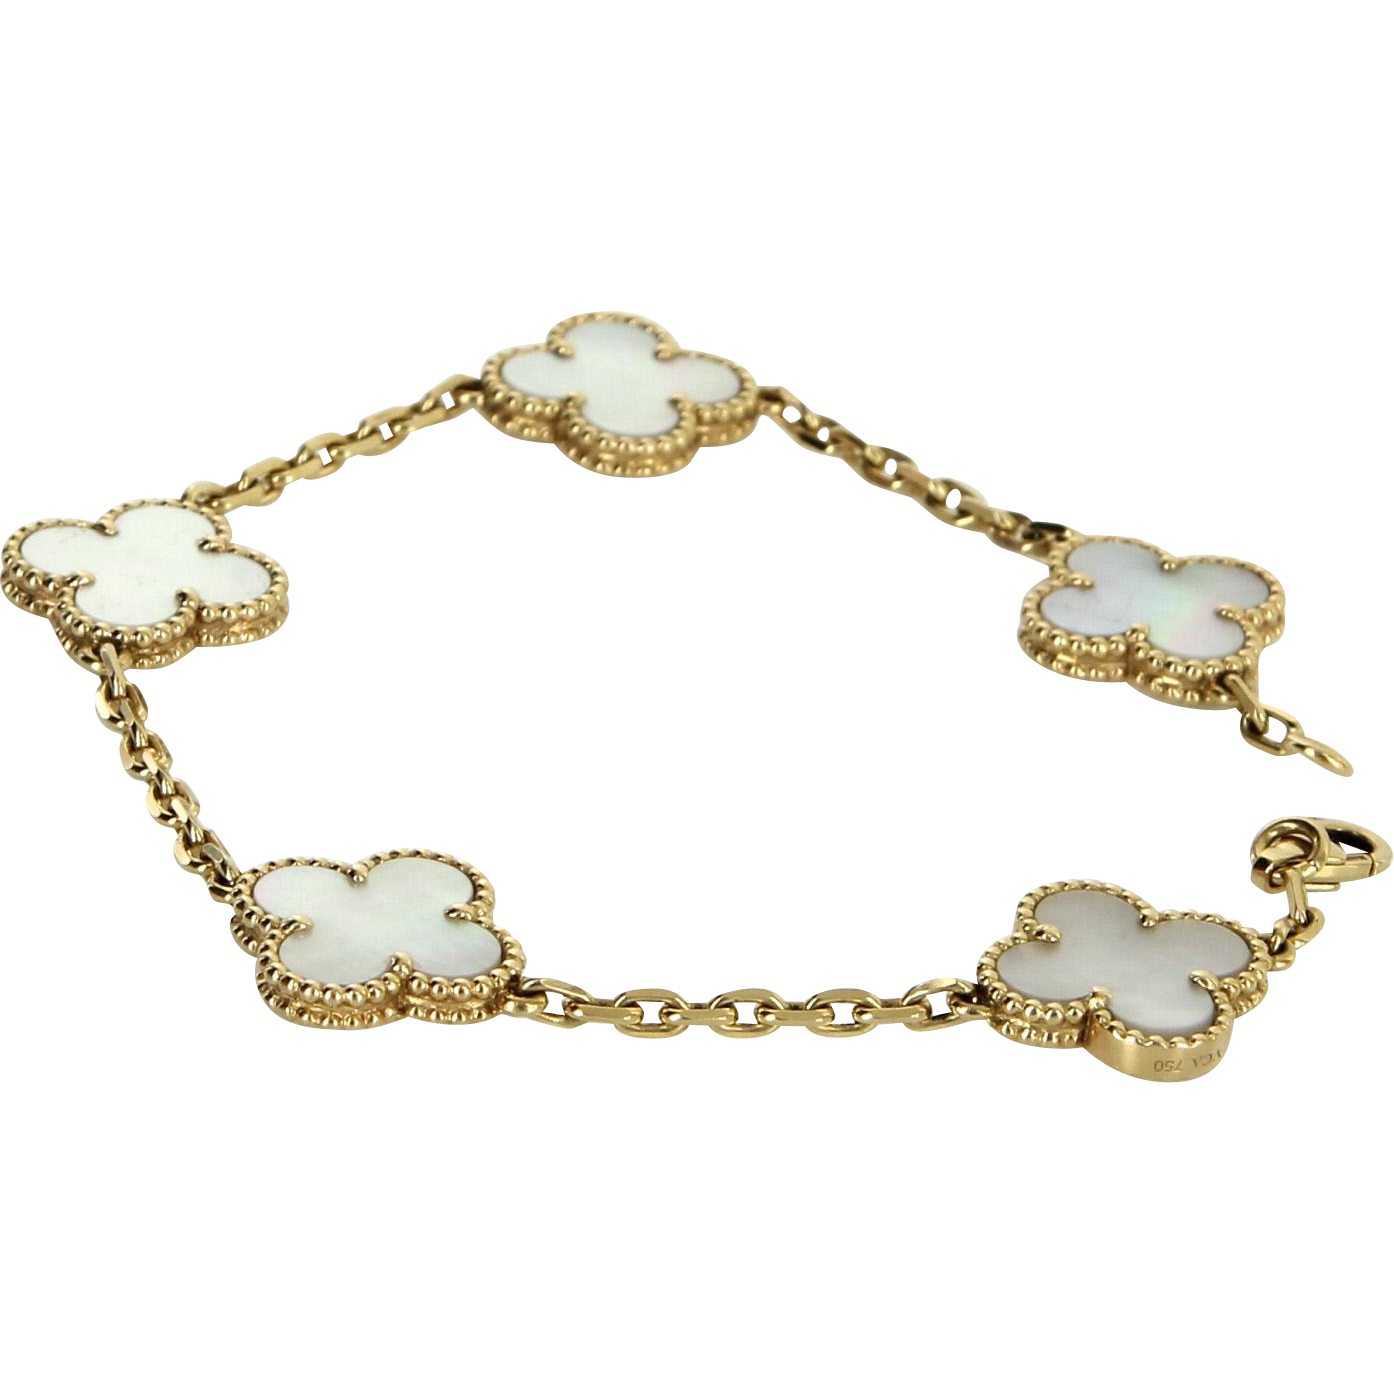 frames clover five in textured arpels shaped p cable the bracelet an designed on beaded with betteridge yellow stations van cleef alhambra vintage gold